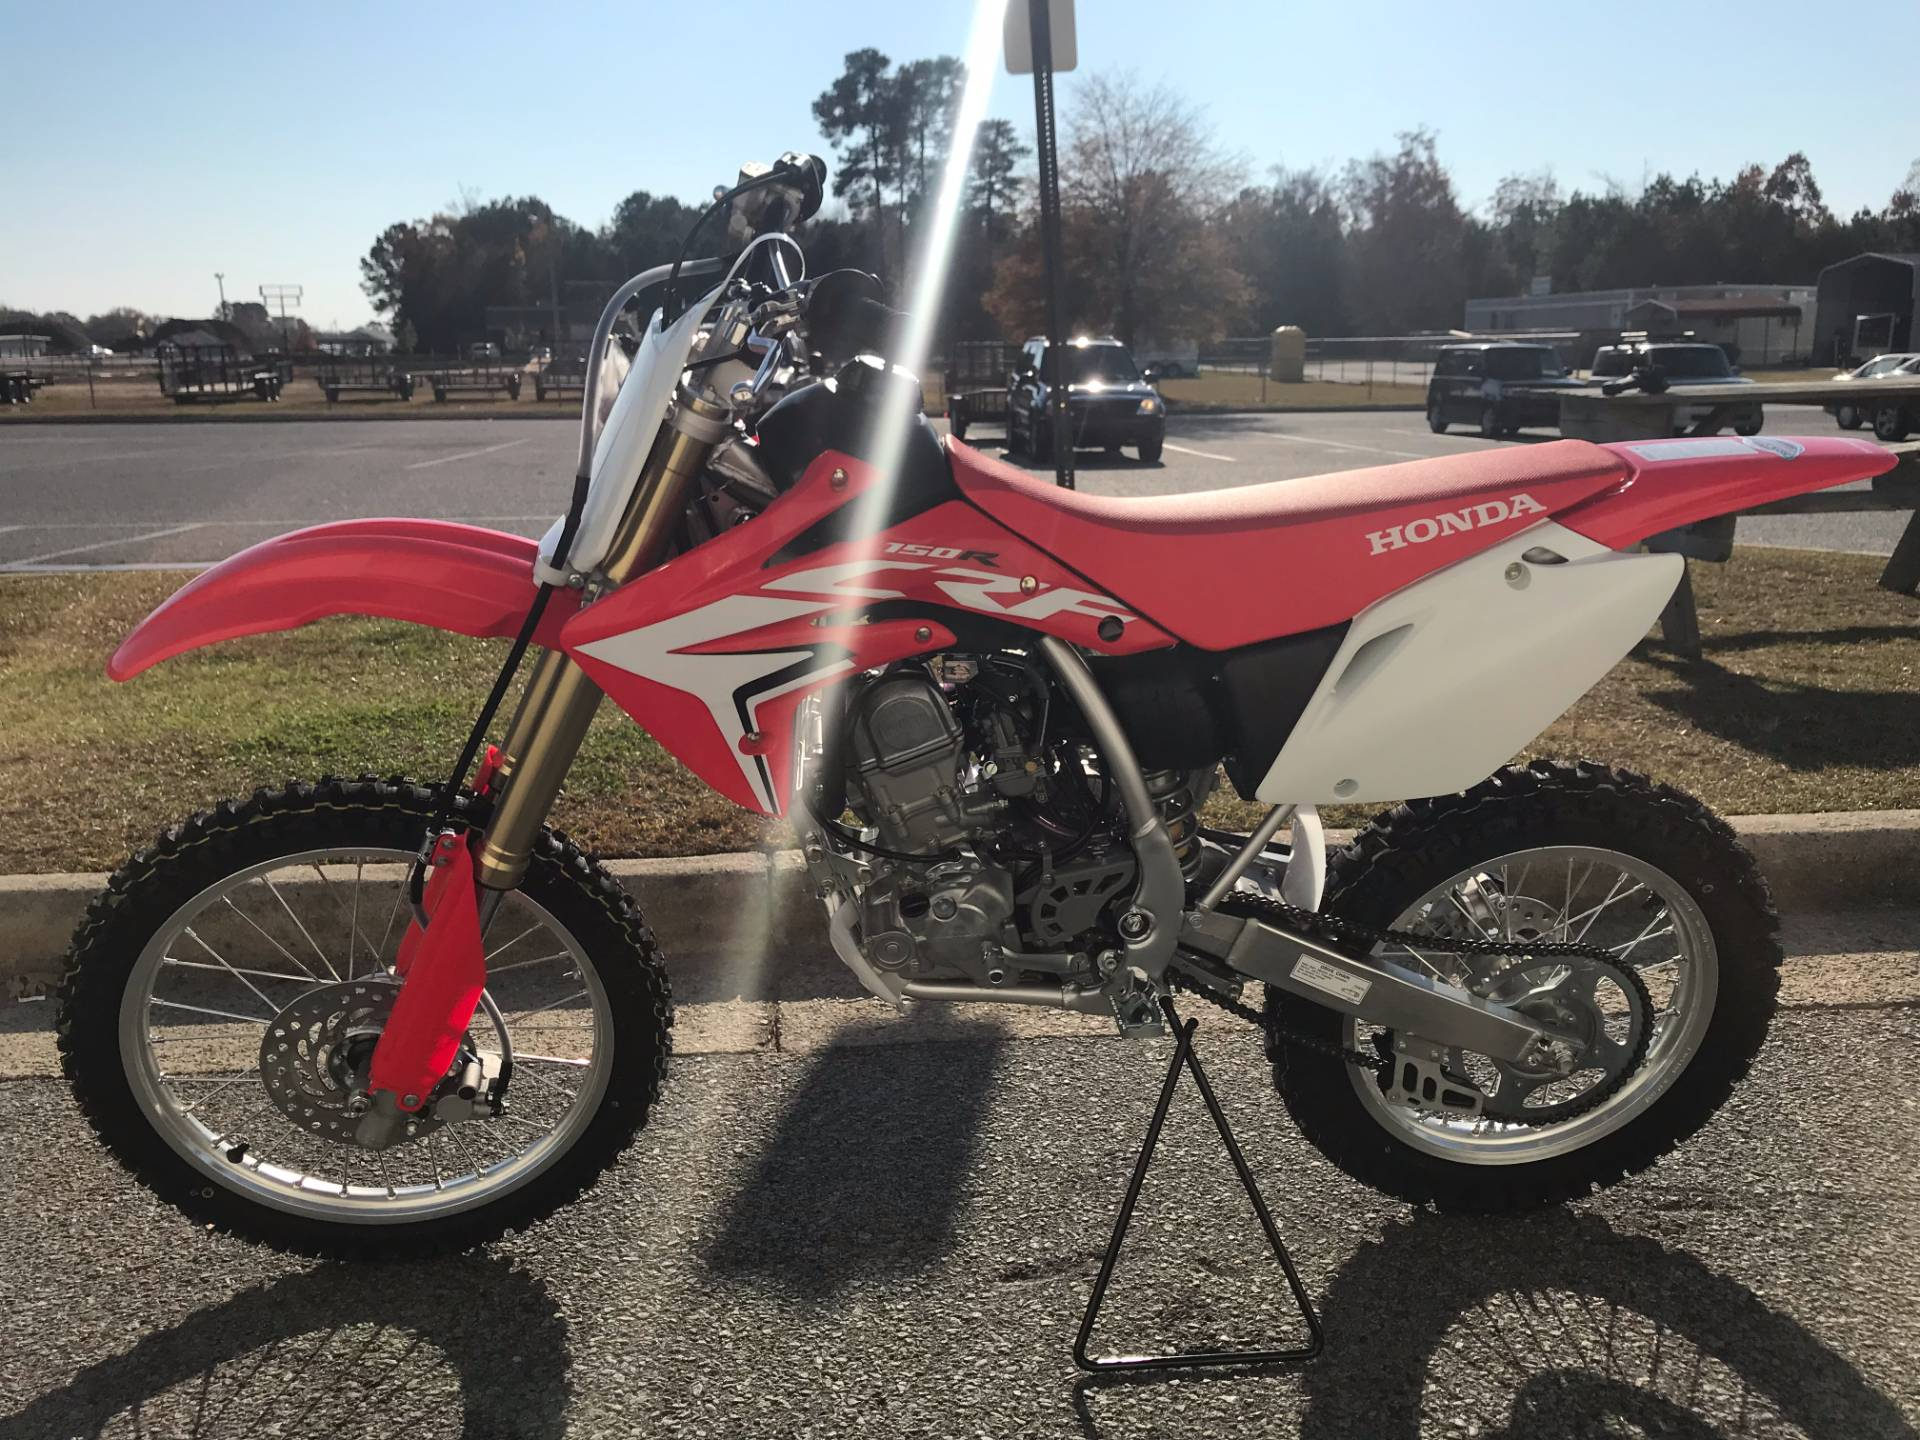 Scooters For Sale Greenville Nc >> 2018 Honda CRF250R For Sale Greenville, NC : 97325